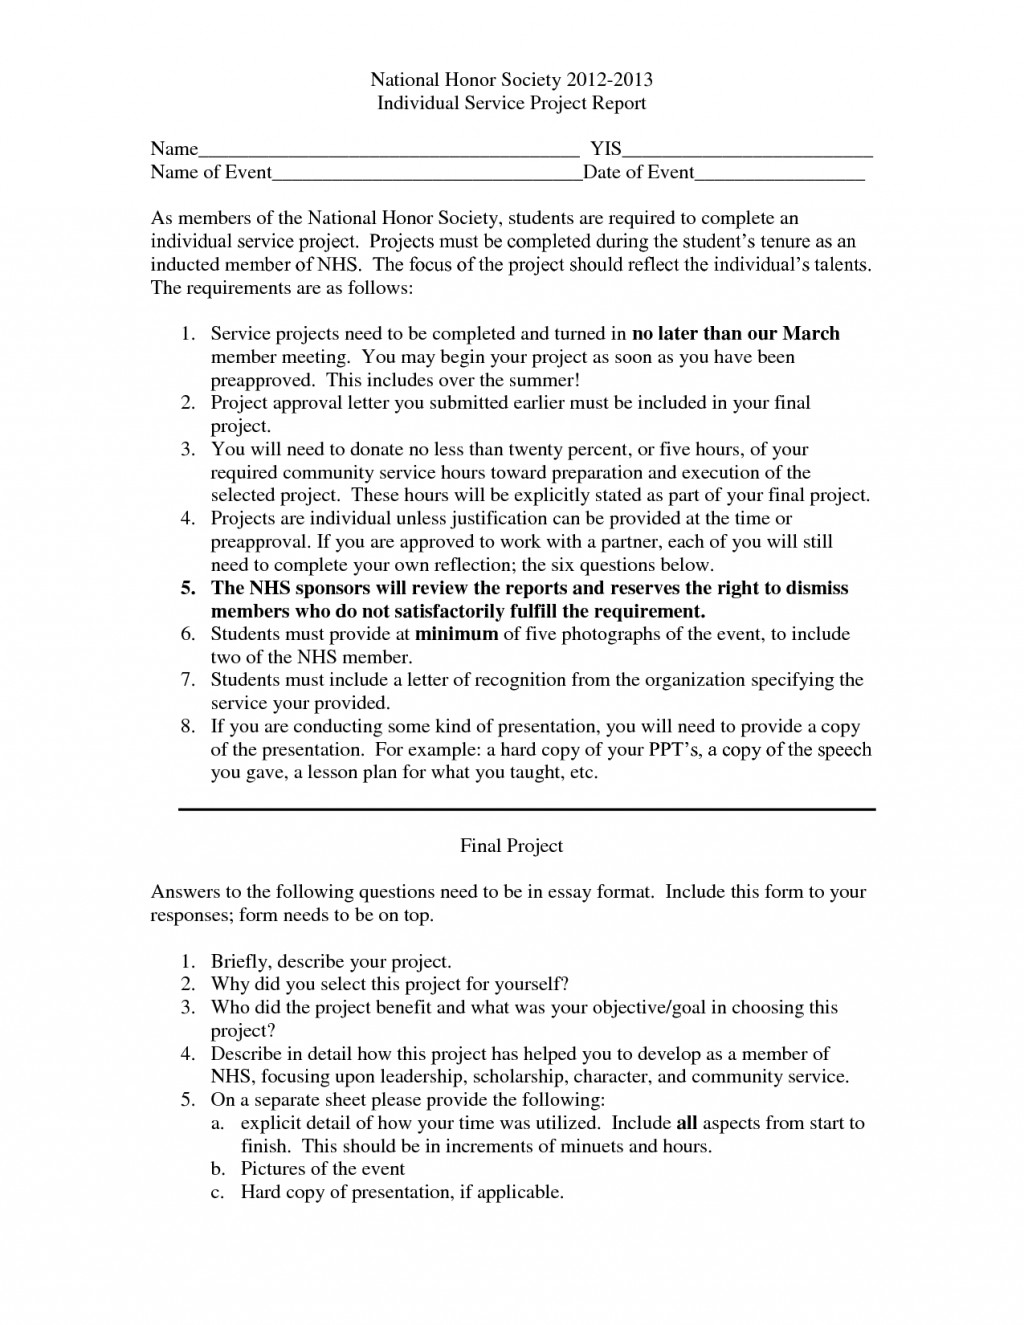 006 Essay Example Nhs Bunch Ideas Of Honor U S Department Defense Photo My Hair In Lovely About Society And Stupendous Tips Requirements Prompt Large